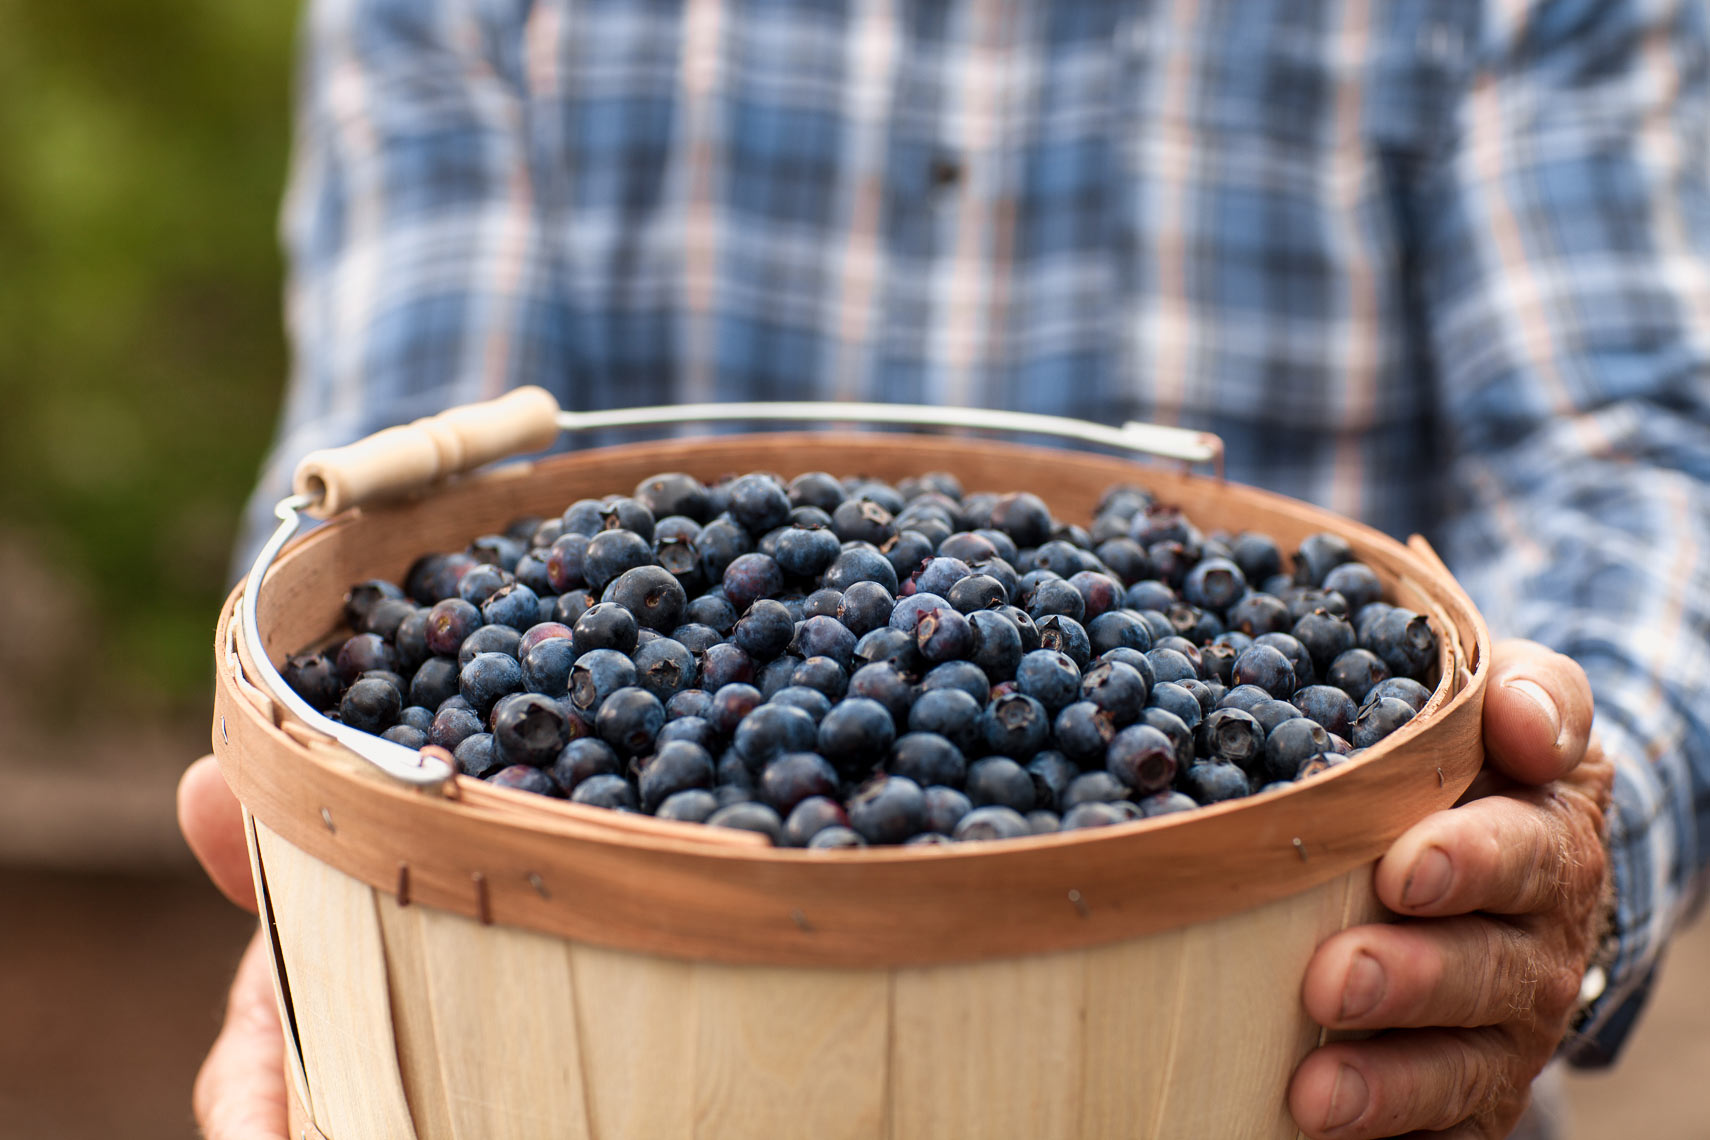 heb-blueberries-produce-department-jason-risner-photography-8692